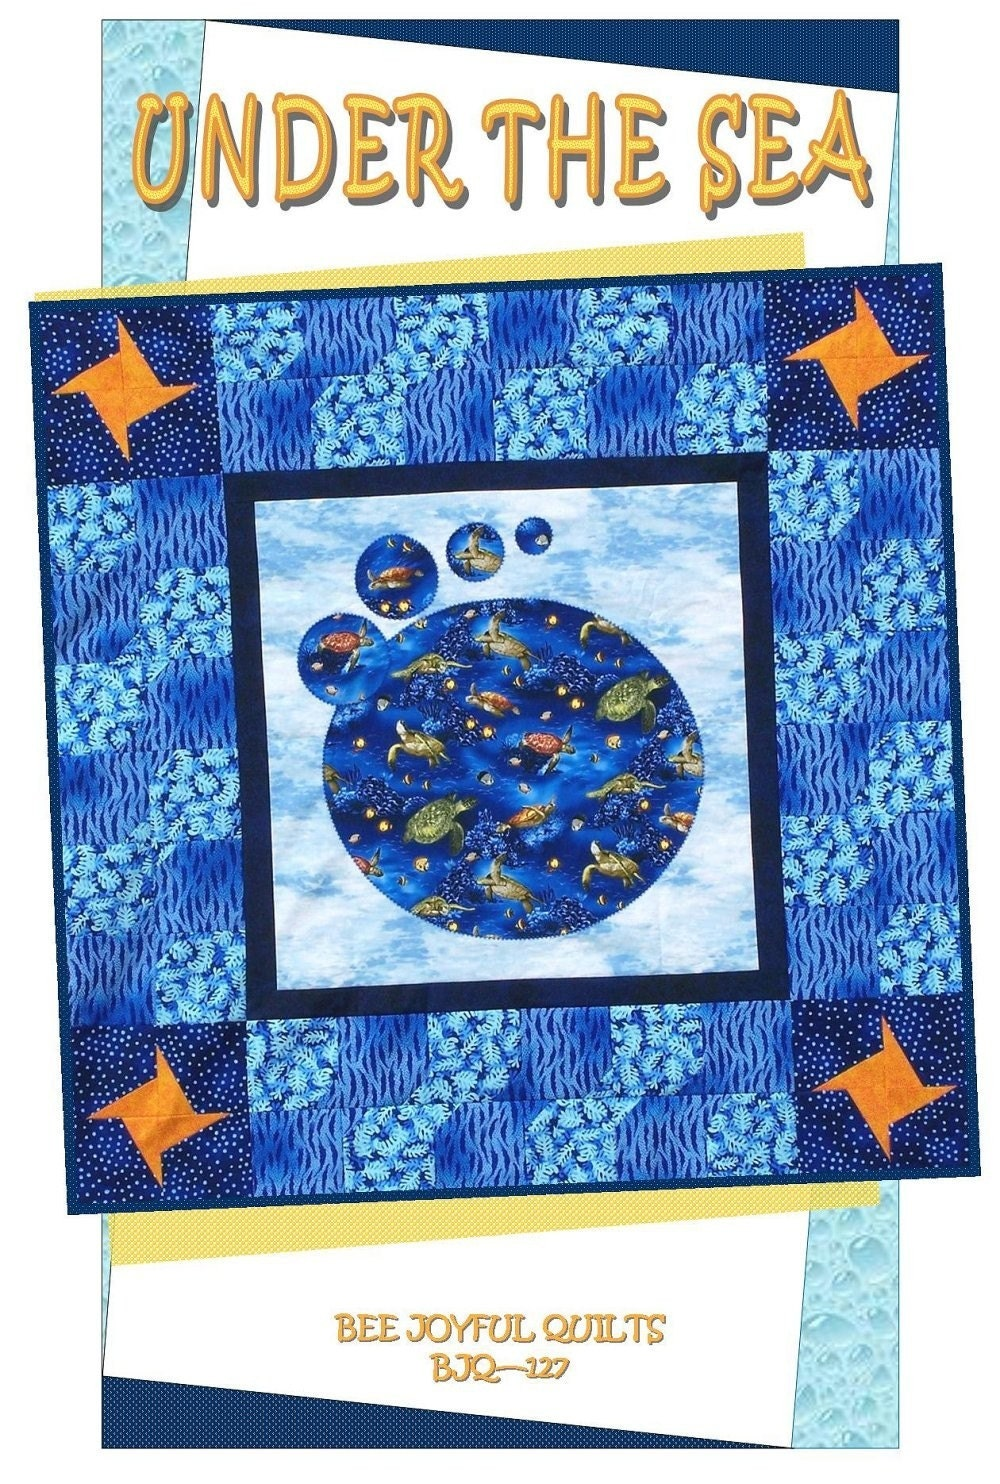 Under The Sea Quilt Pattern B J Q 127 By Beejoyfulquilts